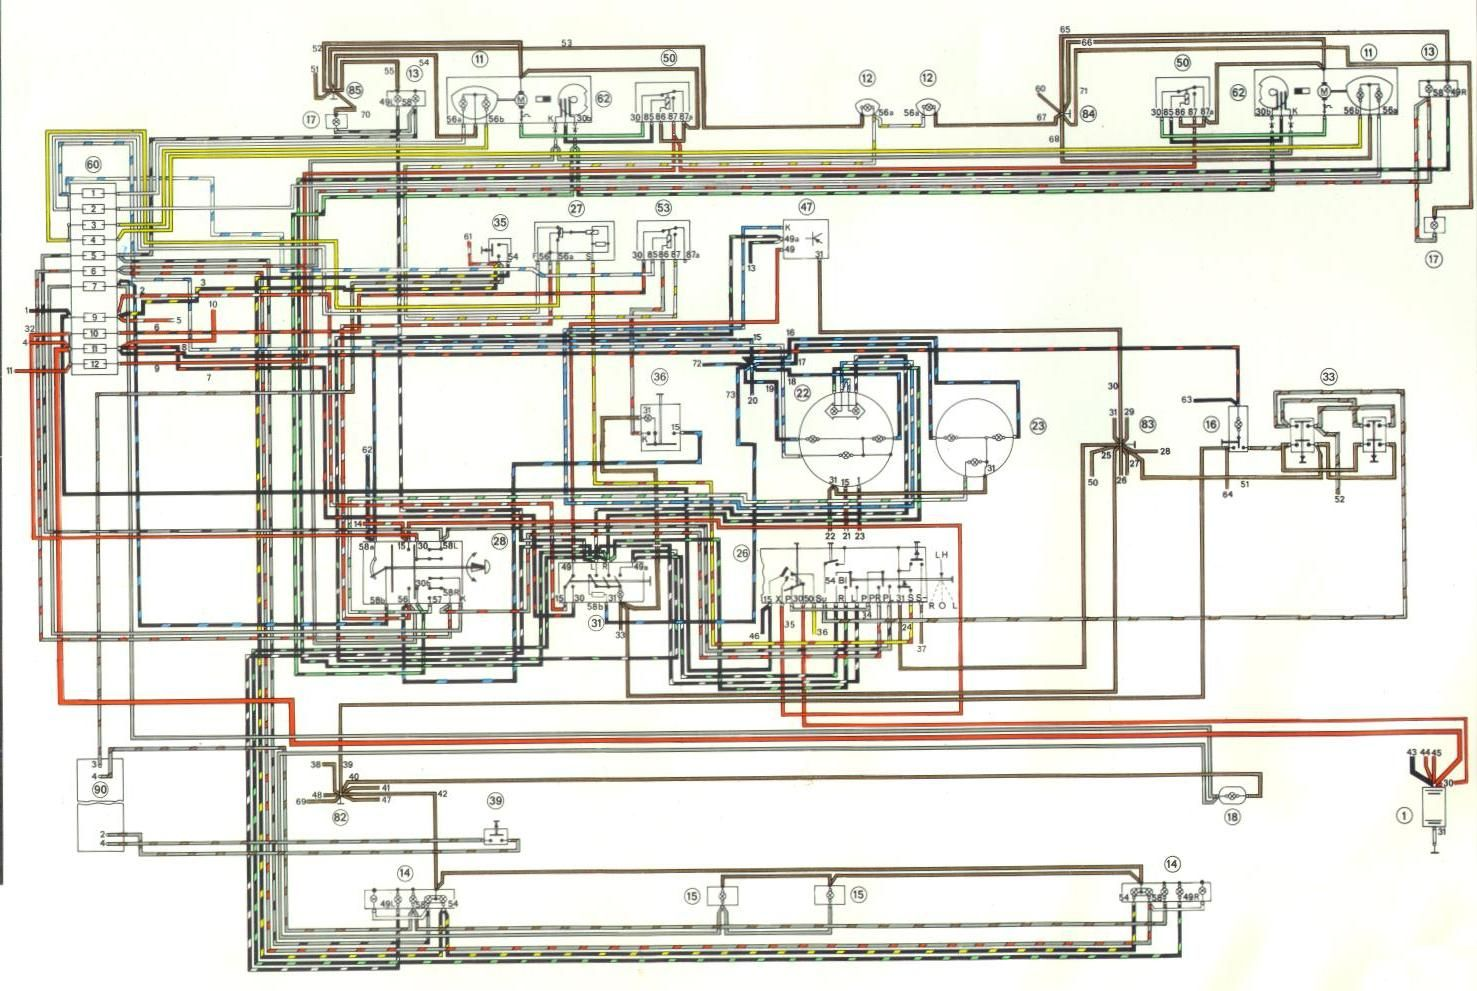 Electrical Diagram 73 Porsche 914 Part 1 Porsche 914 Porsche